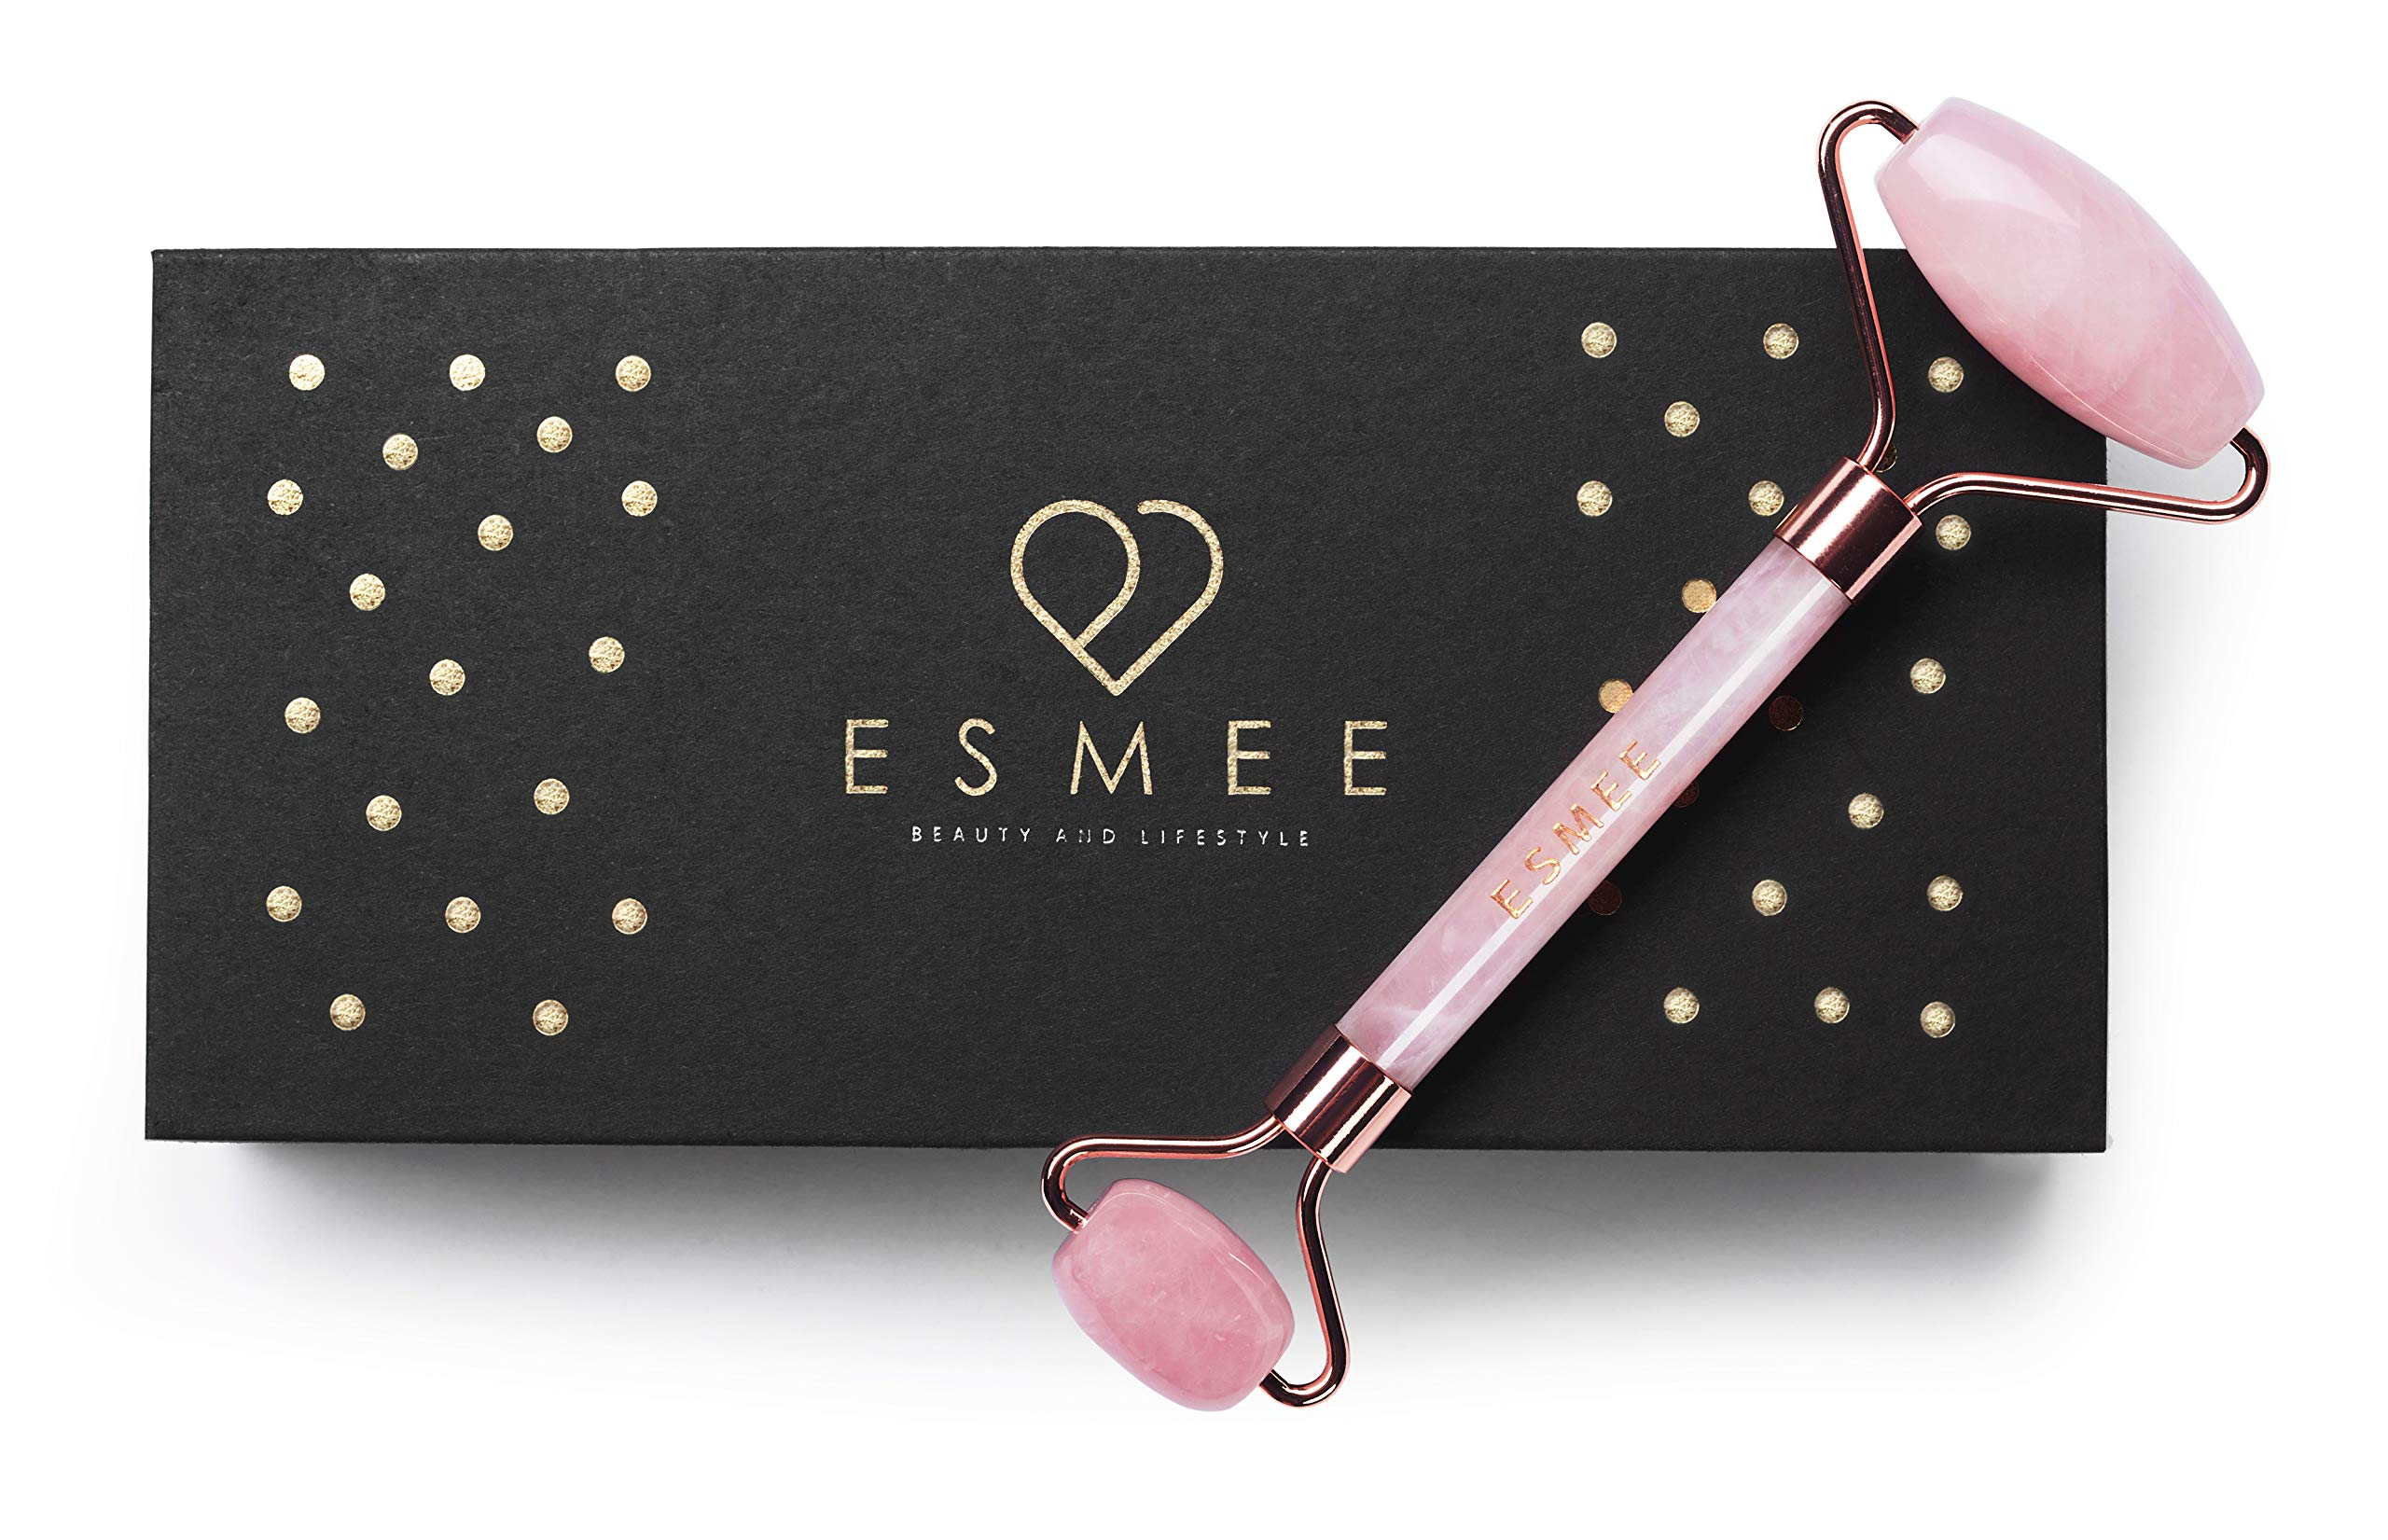 Rose Quartz Roller by Esmee | Luxury Facial Massager Stone Roller | Pink Jade Roller | 100% Real and Natural Rose Quartz Crystal| Anti-aging and Depuffer Beauty Tool for Face and Eyes